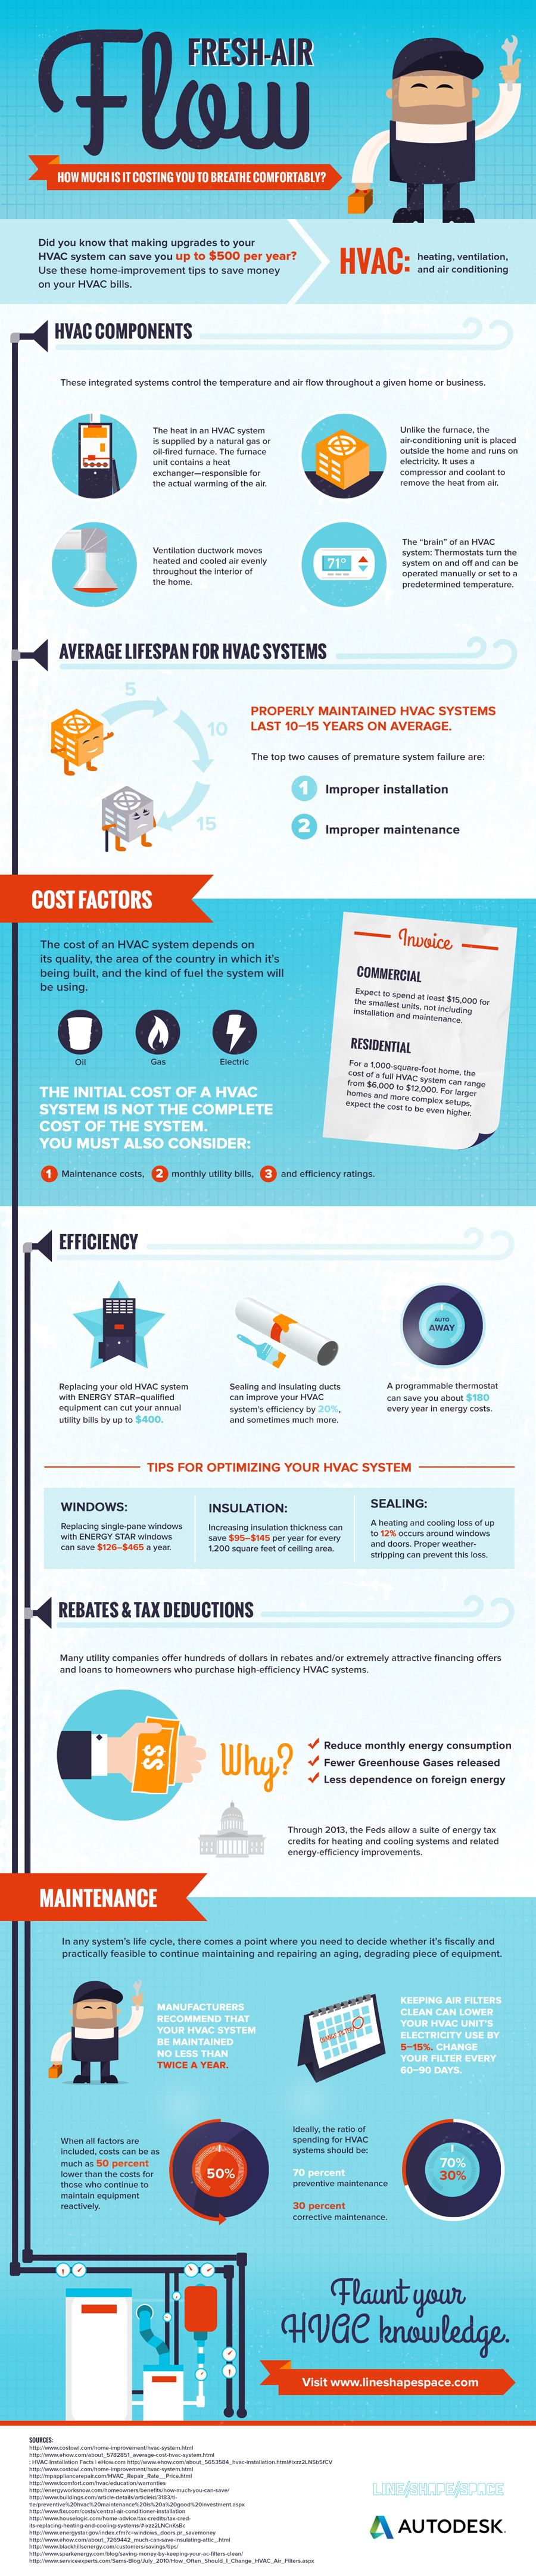 Everything You Need to Know About HVAC Systems | Visit our new infographic gallery at visualoop.com/